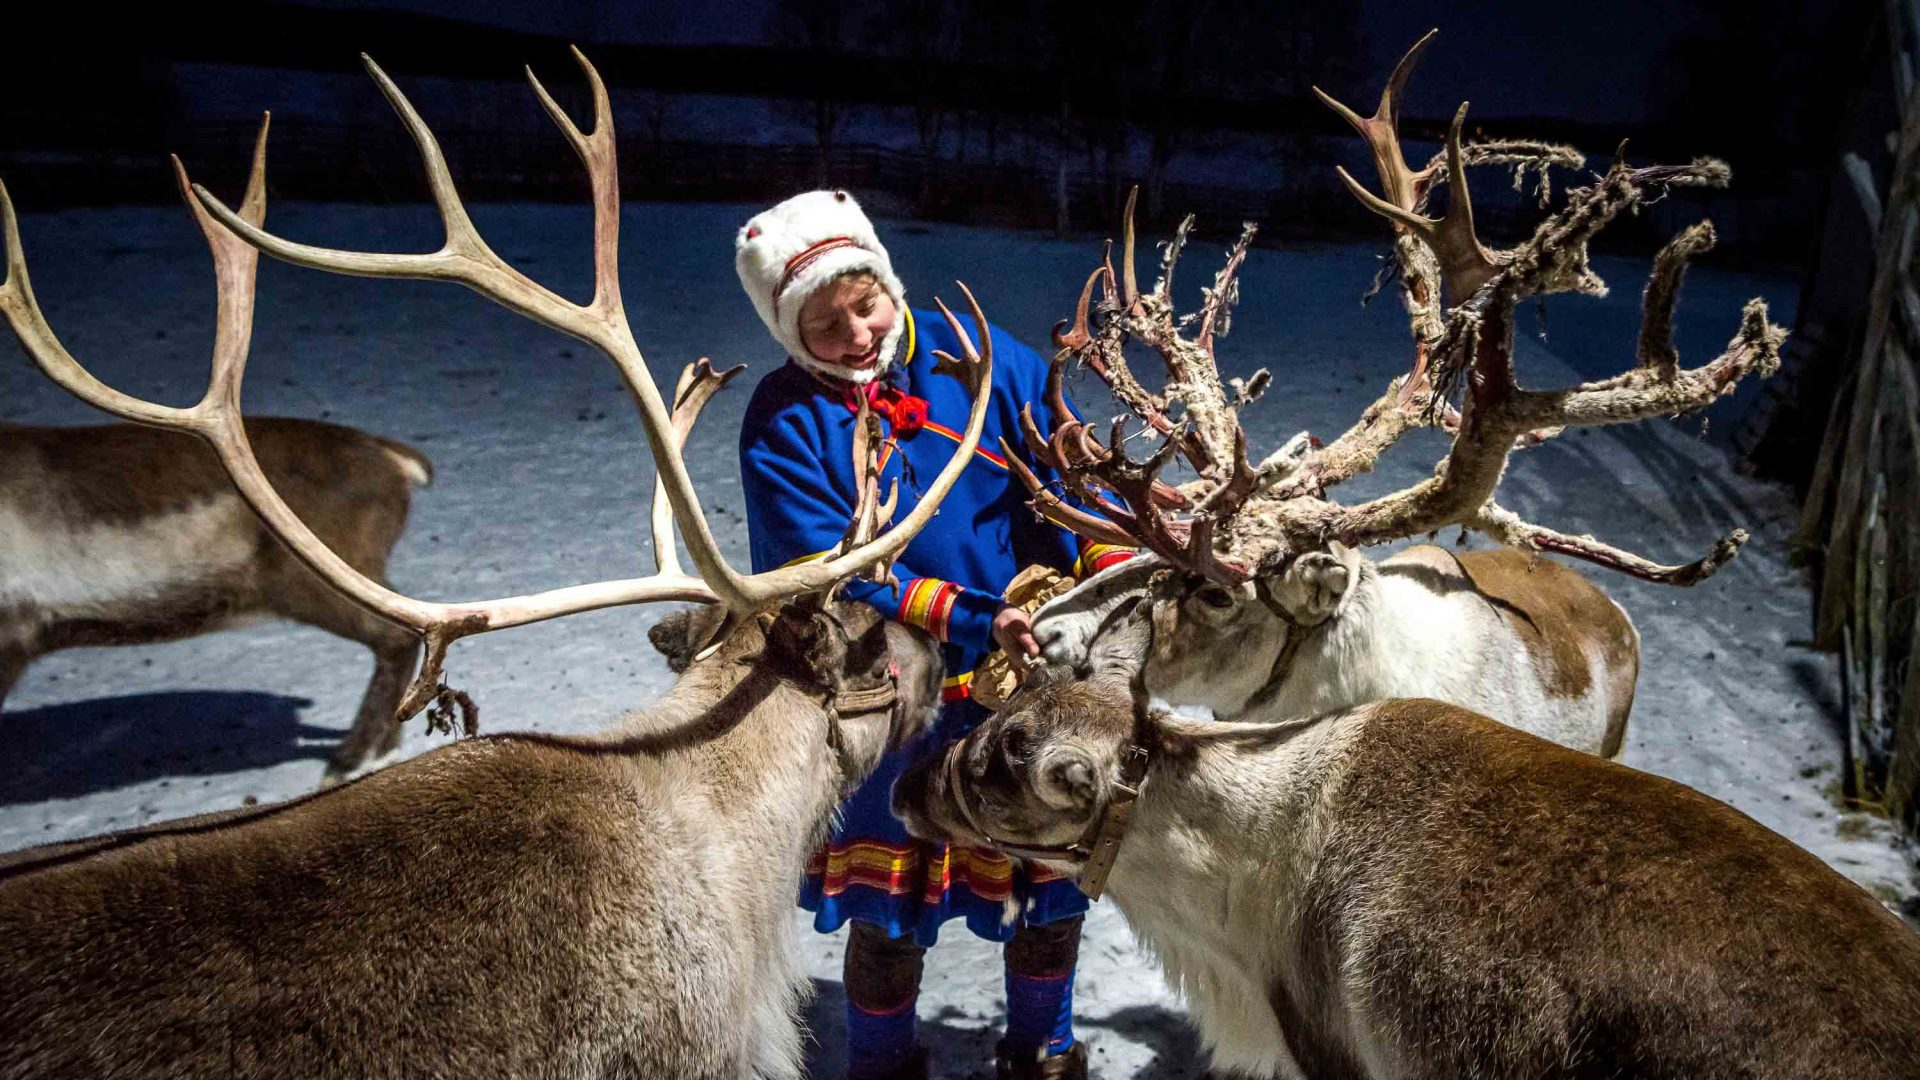 In photos: Life lessons from Sweden's reindeer herders